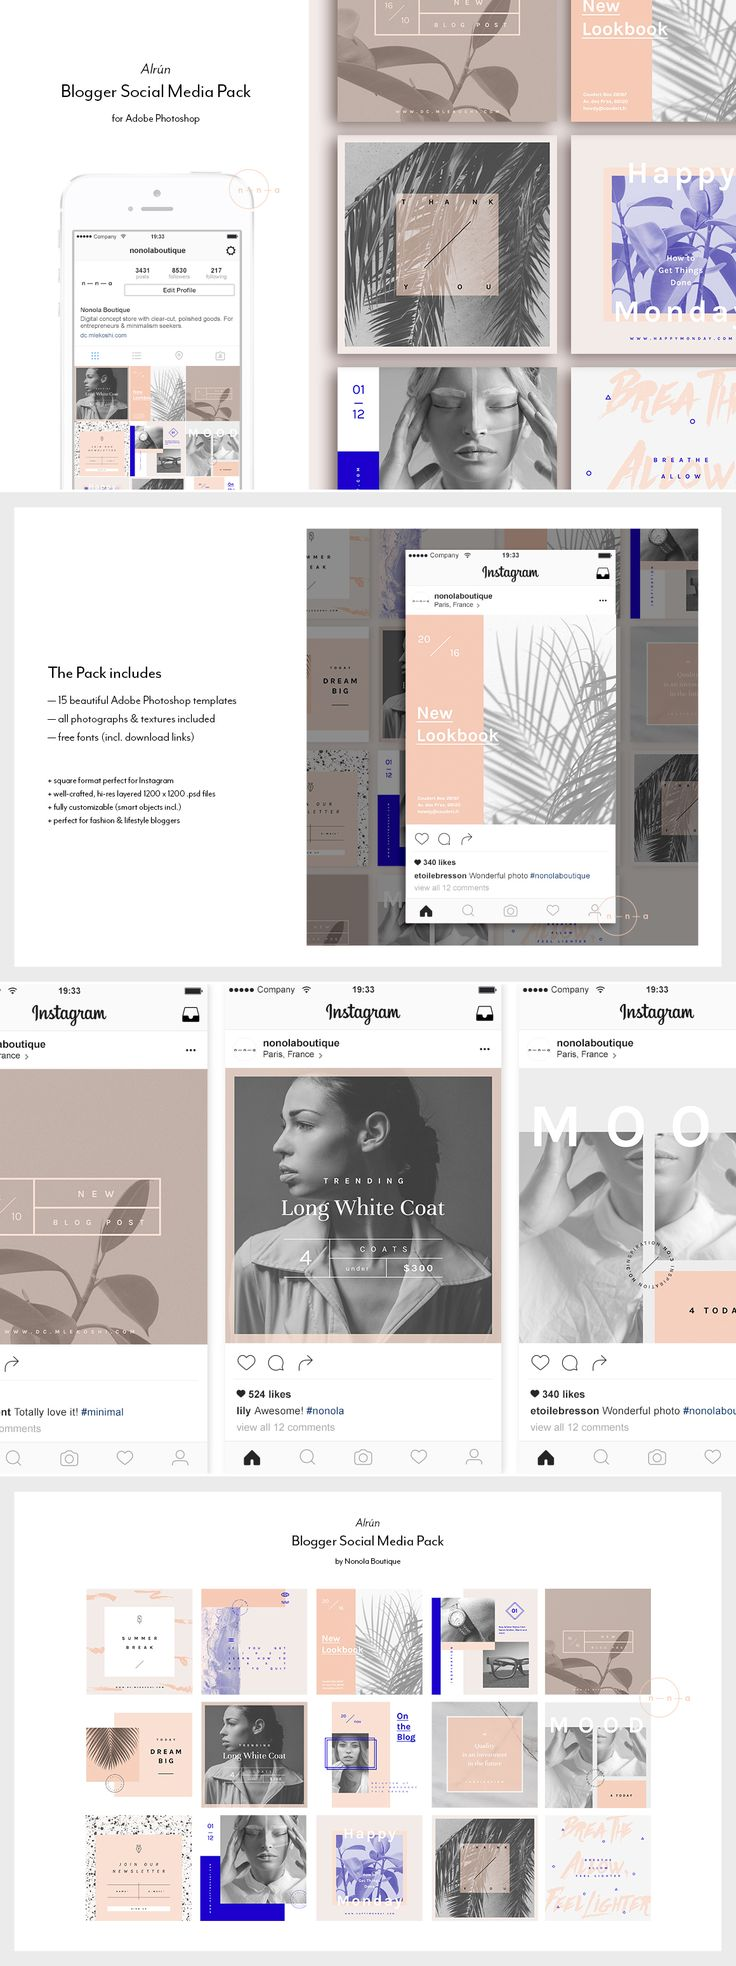 Minimalist Social Media Pack / Stylish graphics - Tap the link to shop on our official online store! You can also join our affiliate and/or rewards programs for FREE!